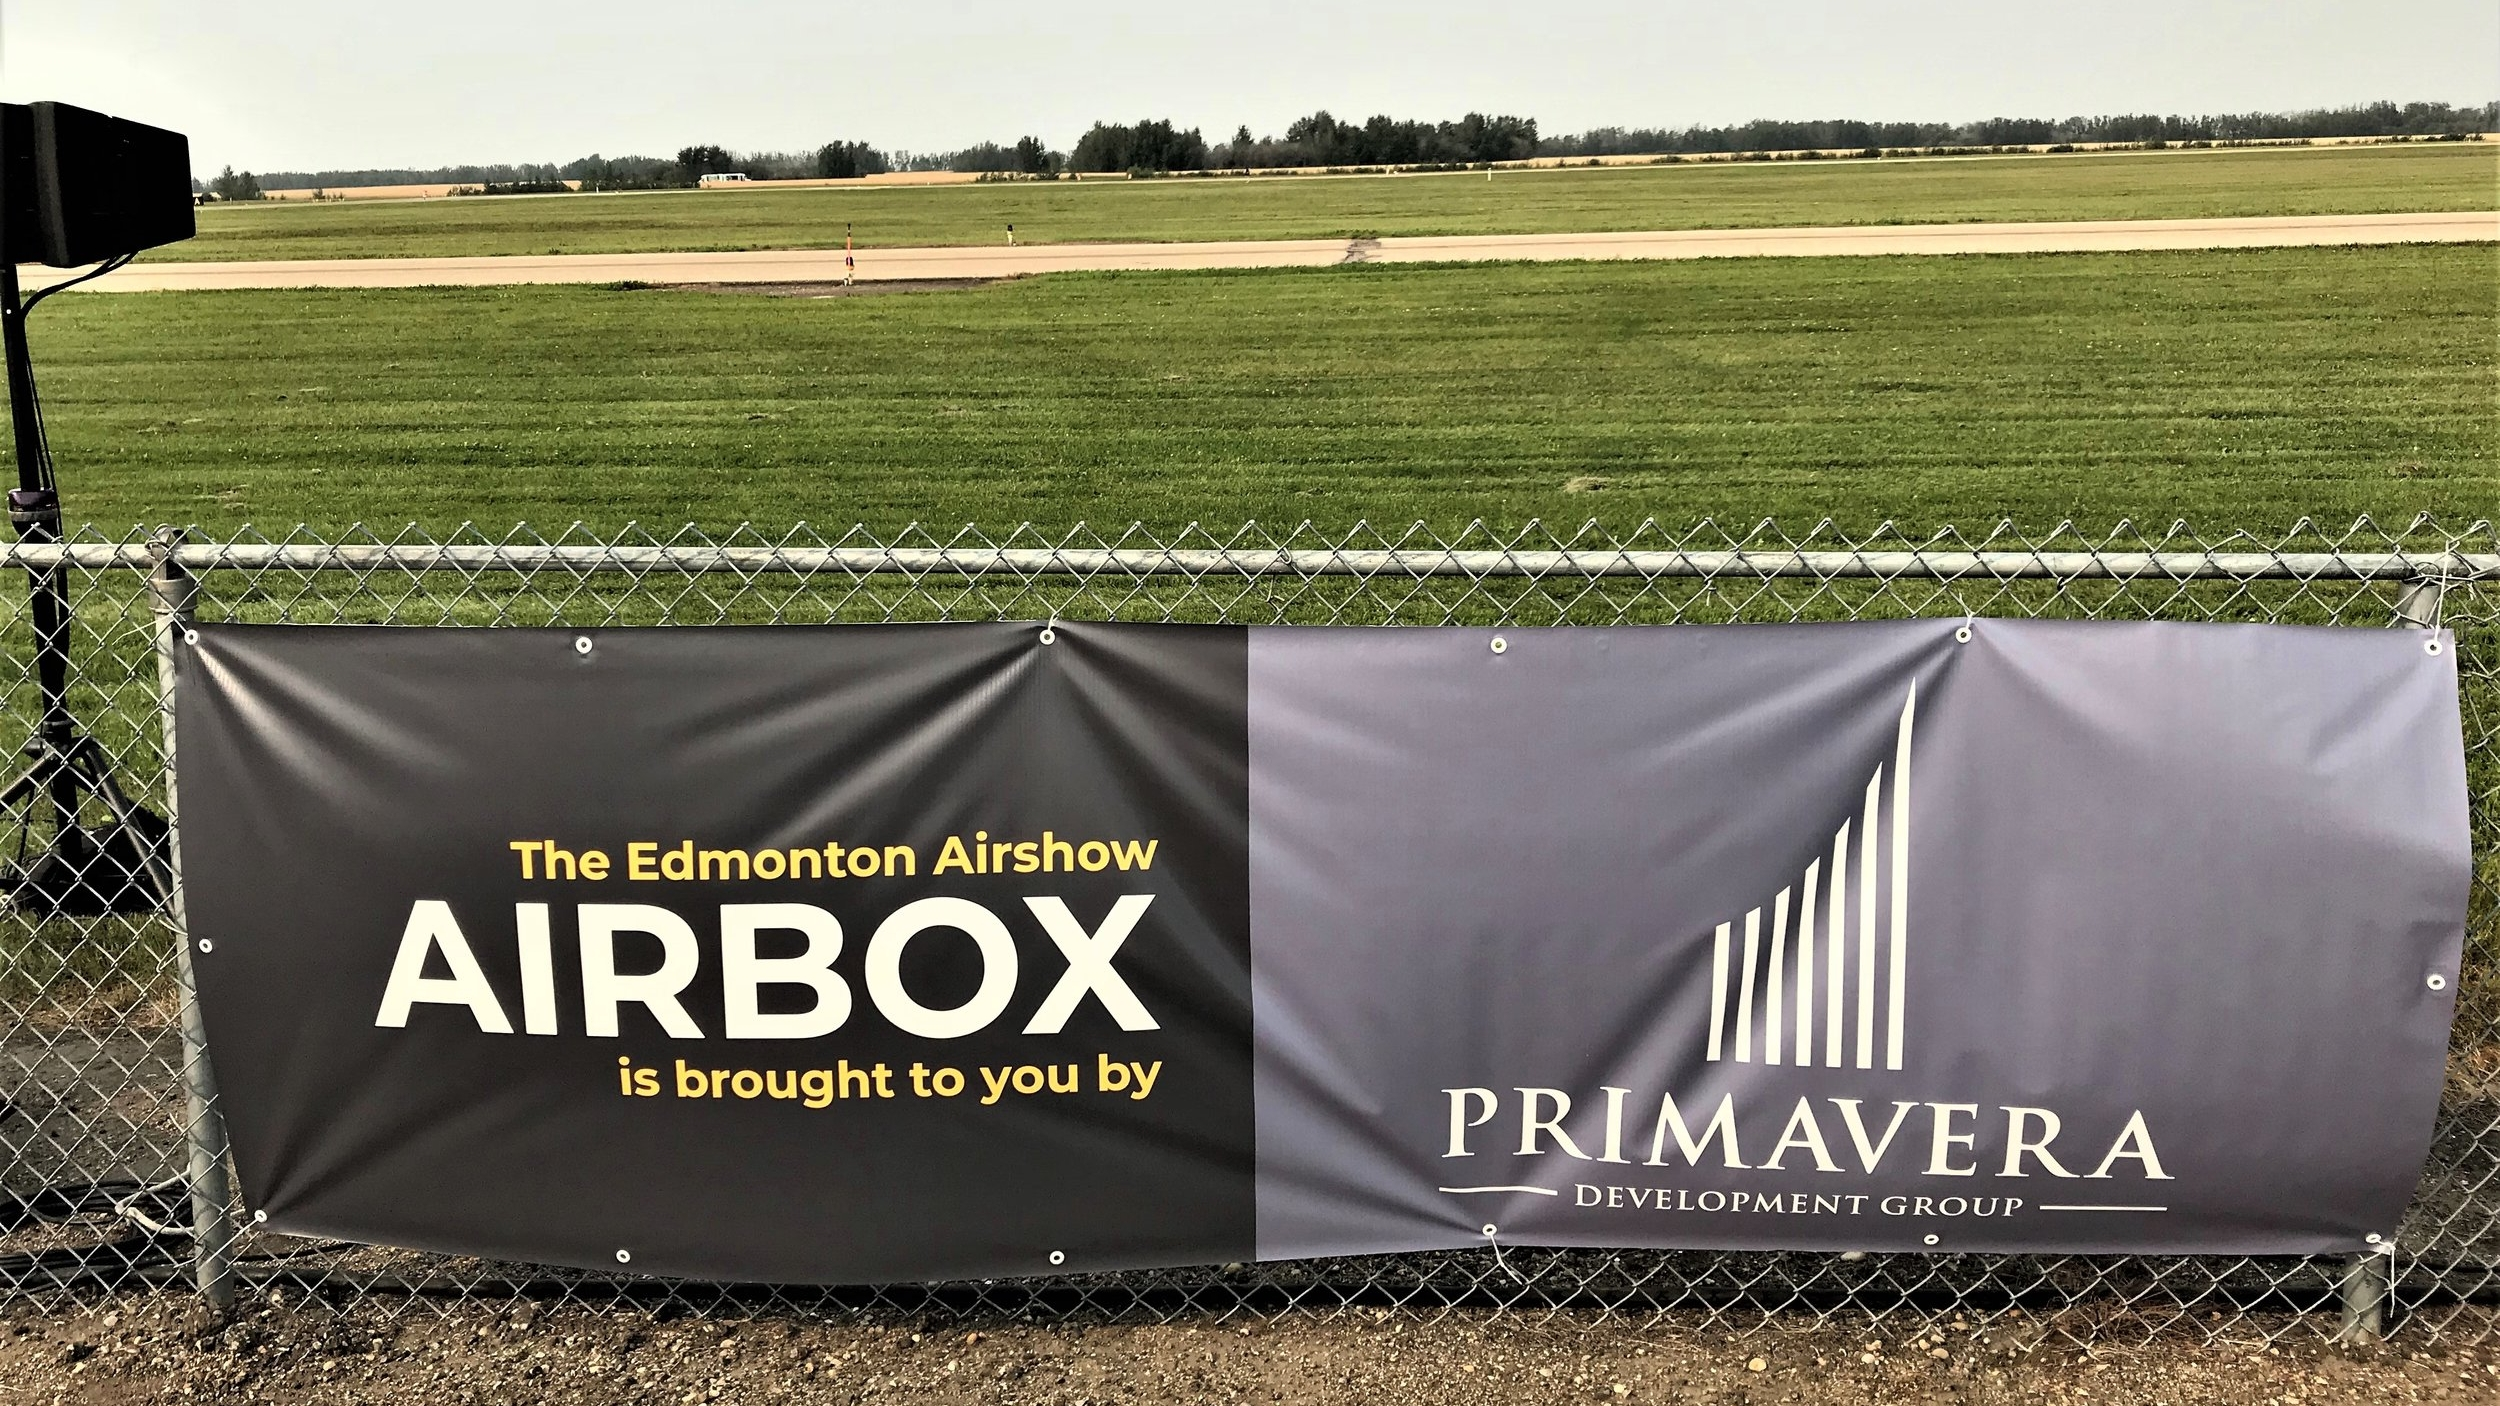 AIRBOX brought to you by PRIMAVERA Development Group.  Photo by Ken Cantor.